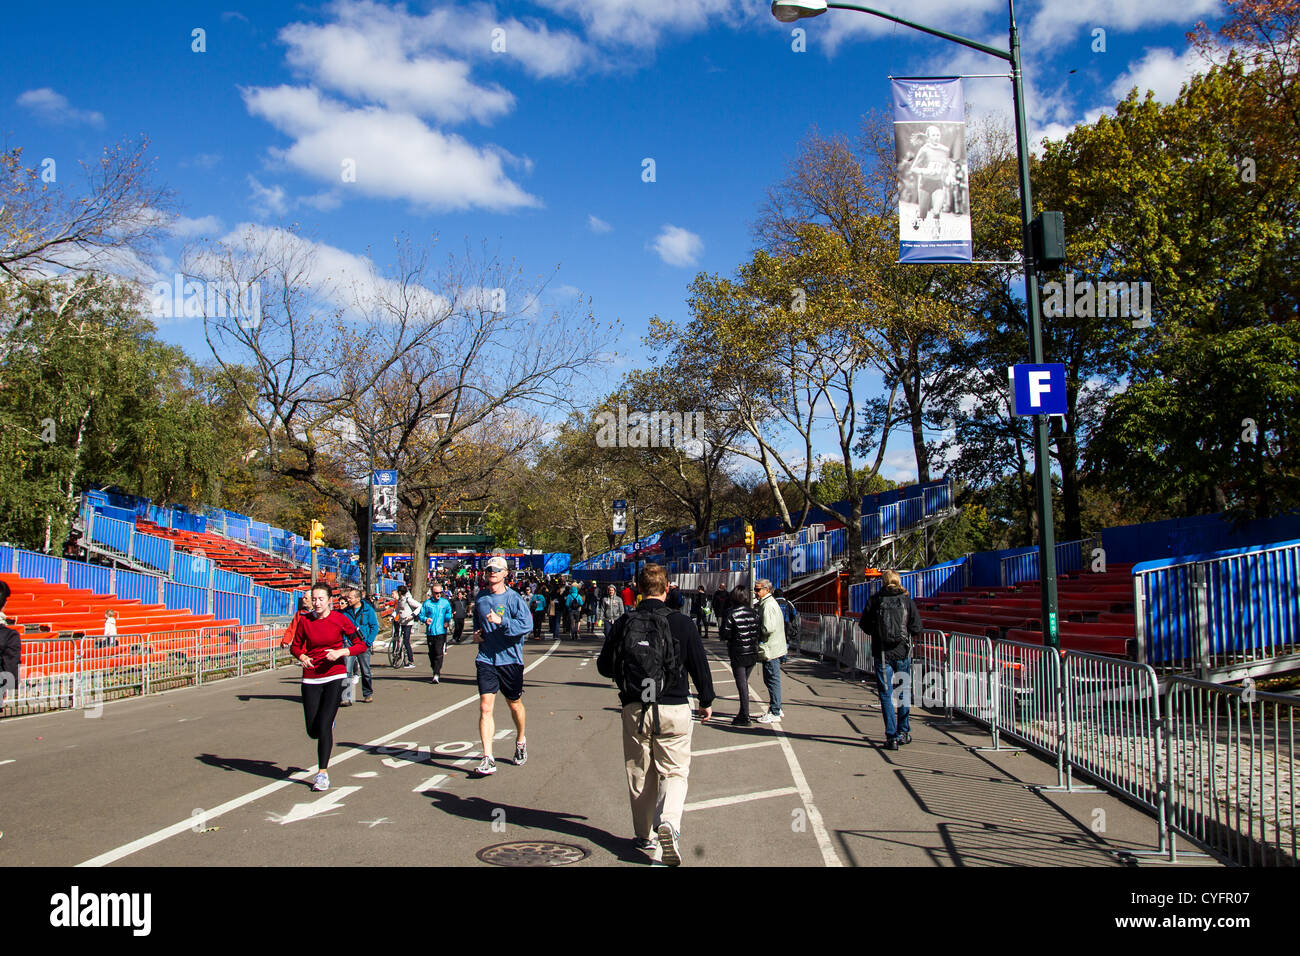 New York, USA. 3rd November 2012. Route of the 2012 NYC Marathon near the finish line which was canceled after Hurricane - Stock Image